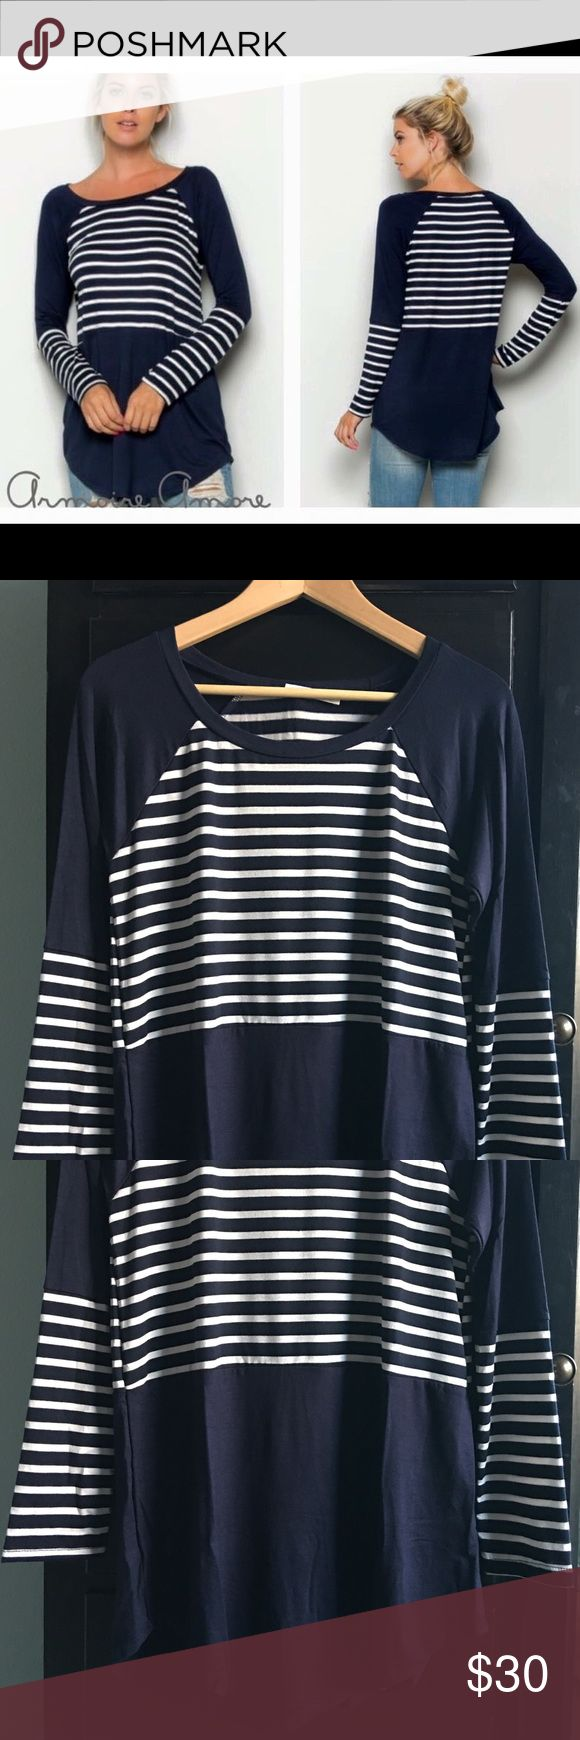 Navy Stripe Color Block Tee Navy stripes? Navy stripes!!!  Long sleeve tunic with splice and color block detail.  I am loving this top!  This top is versatile, wear with denim, leggings, shorts, any style can pull this off! I love navy stripes!  Tunic length covers your booty!  Did I say navy stripes?!  Made in US of A .  NWOT (from boutique) Sizes: Small (2-4), Large (8-10)  Tag a friend ❤️ Tops Tunics